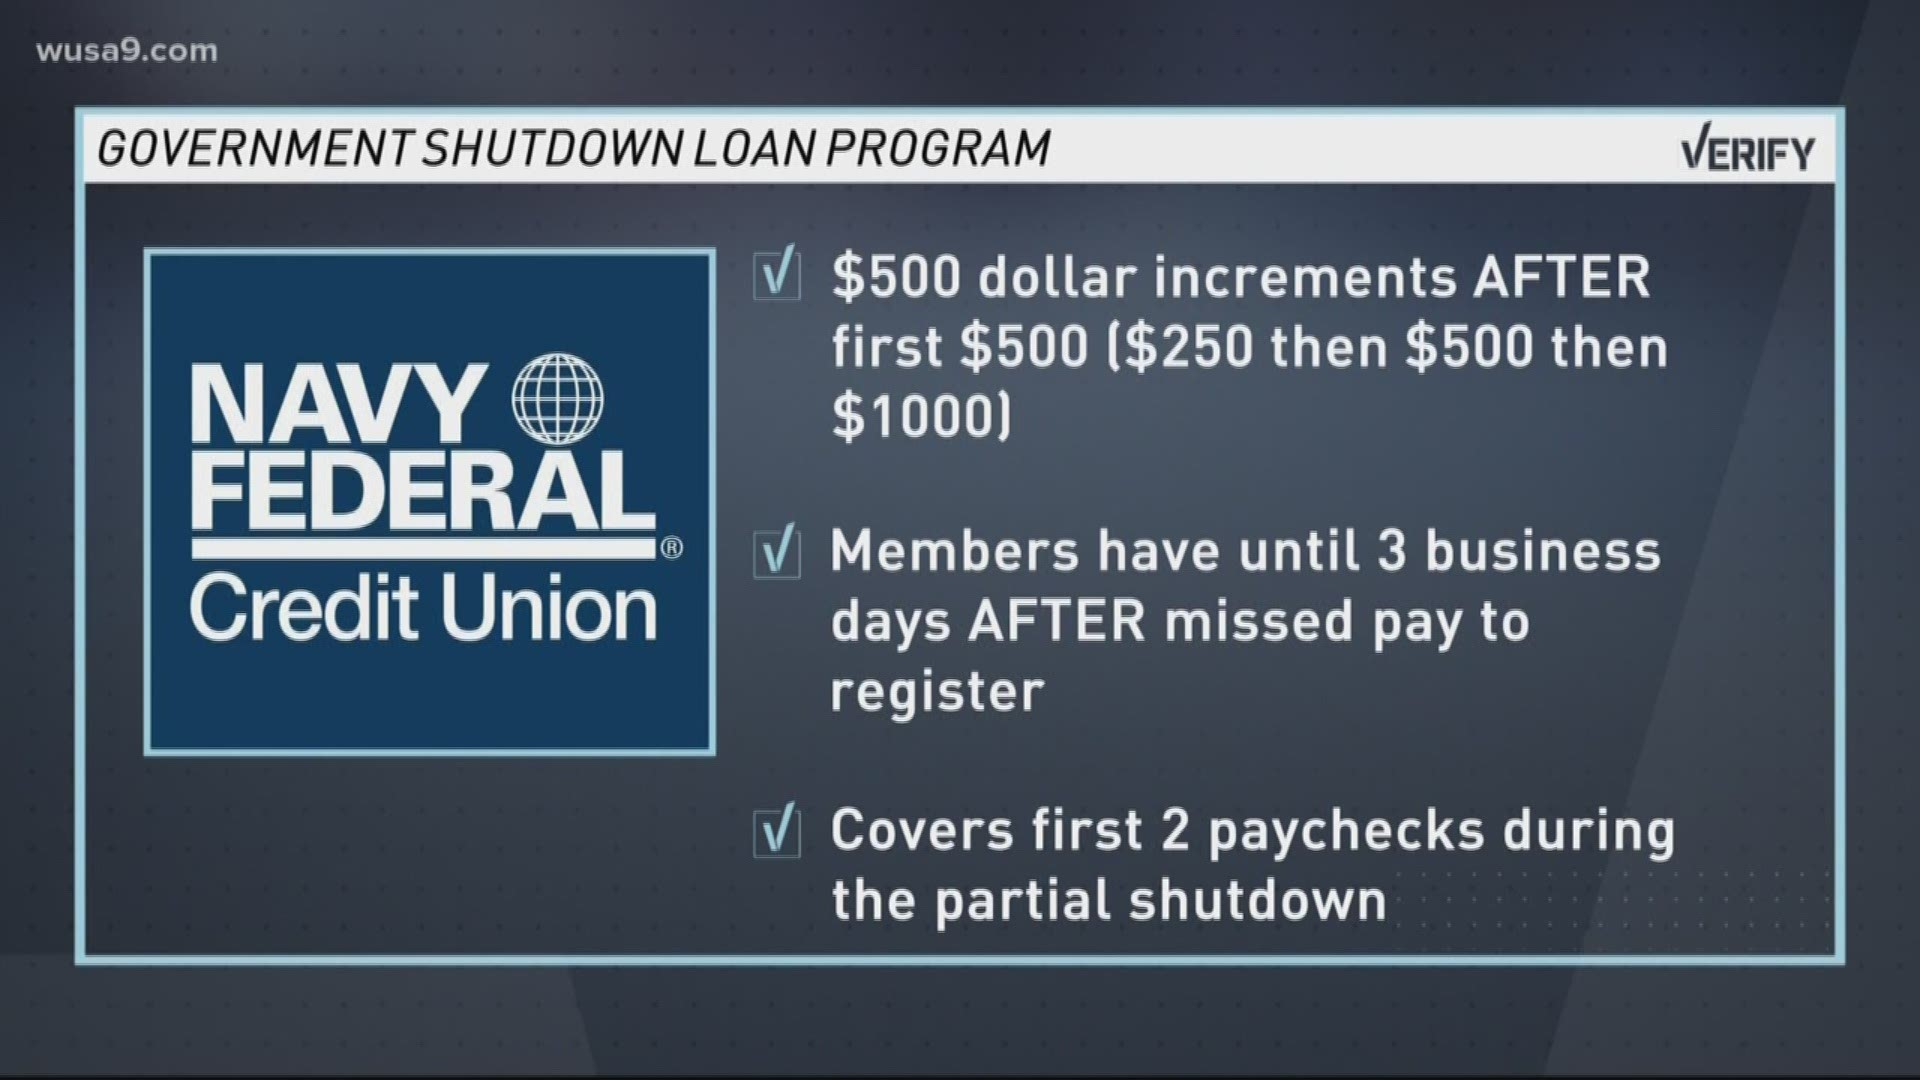 Verify Navy Federal Credit Union Providing Funding To Furloughed Members During Shutdown Wusa9 Com